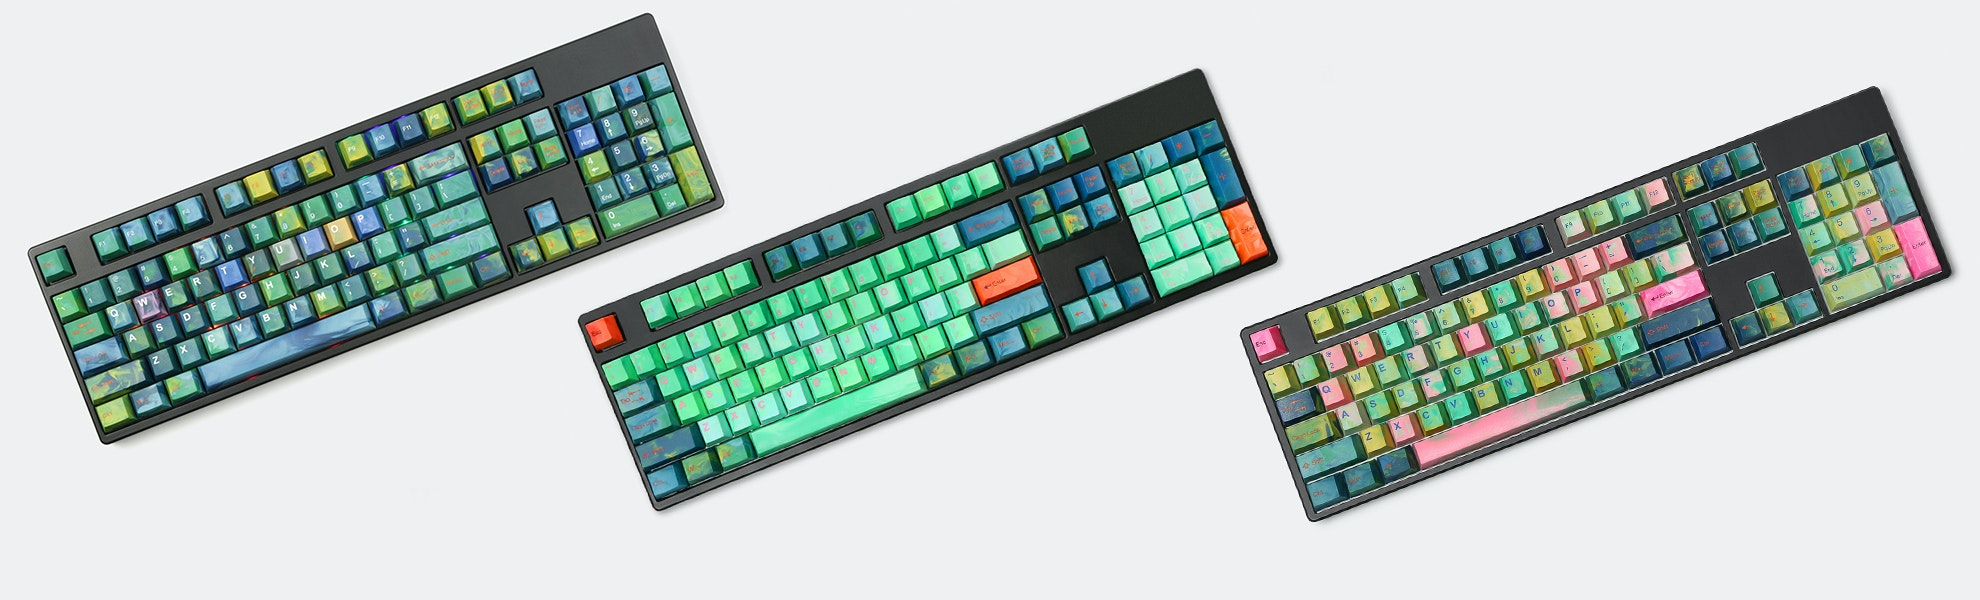 Tai-Hao Avatar ABS Keycap Set